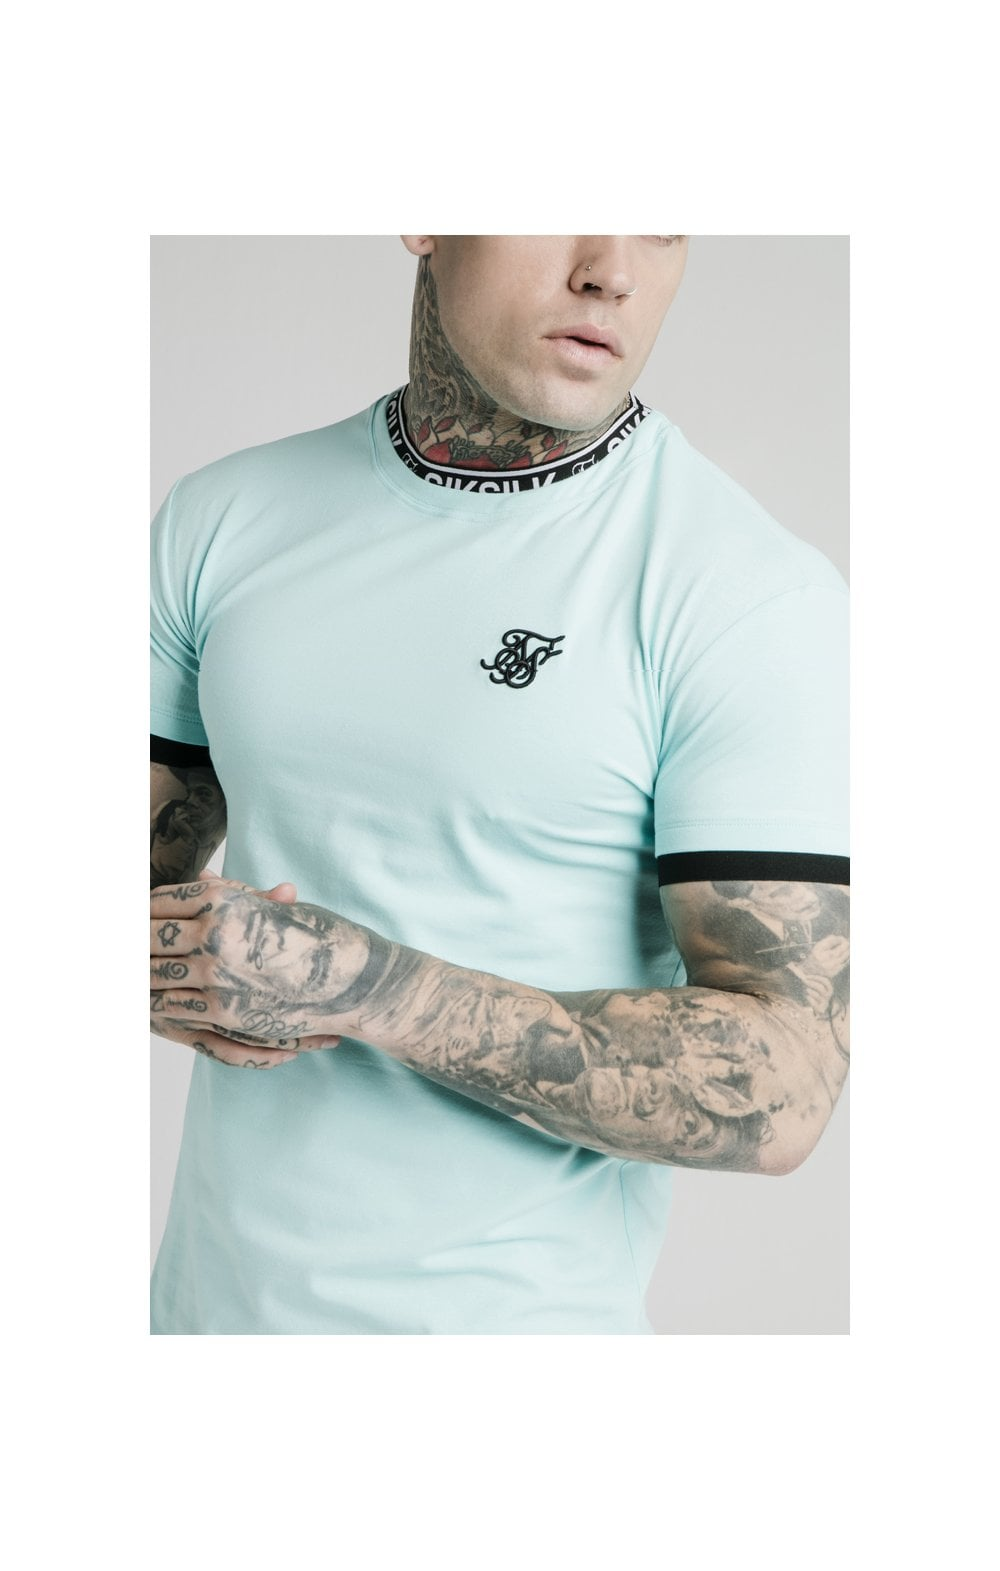 SikSilk S/S Inset Tape Collar Gym Tee - Teal (1)